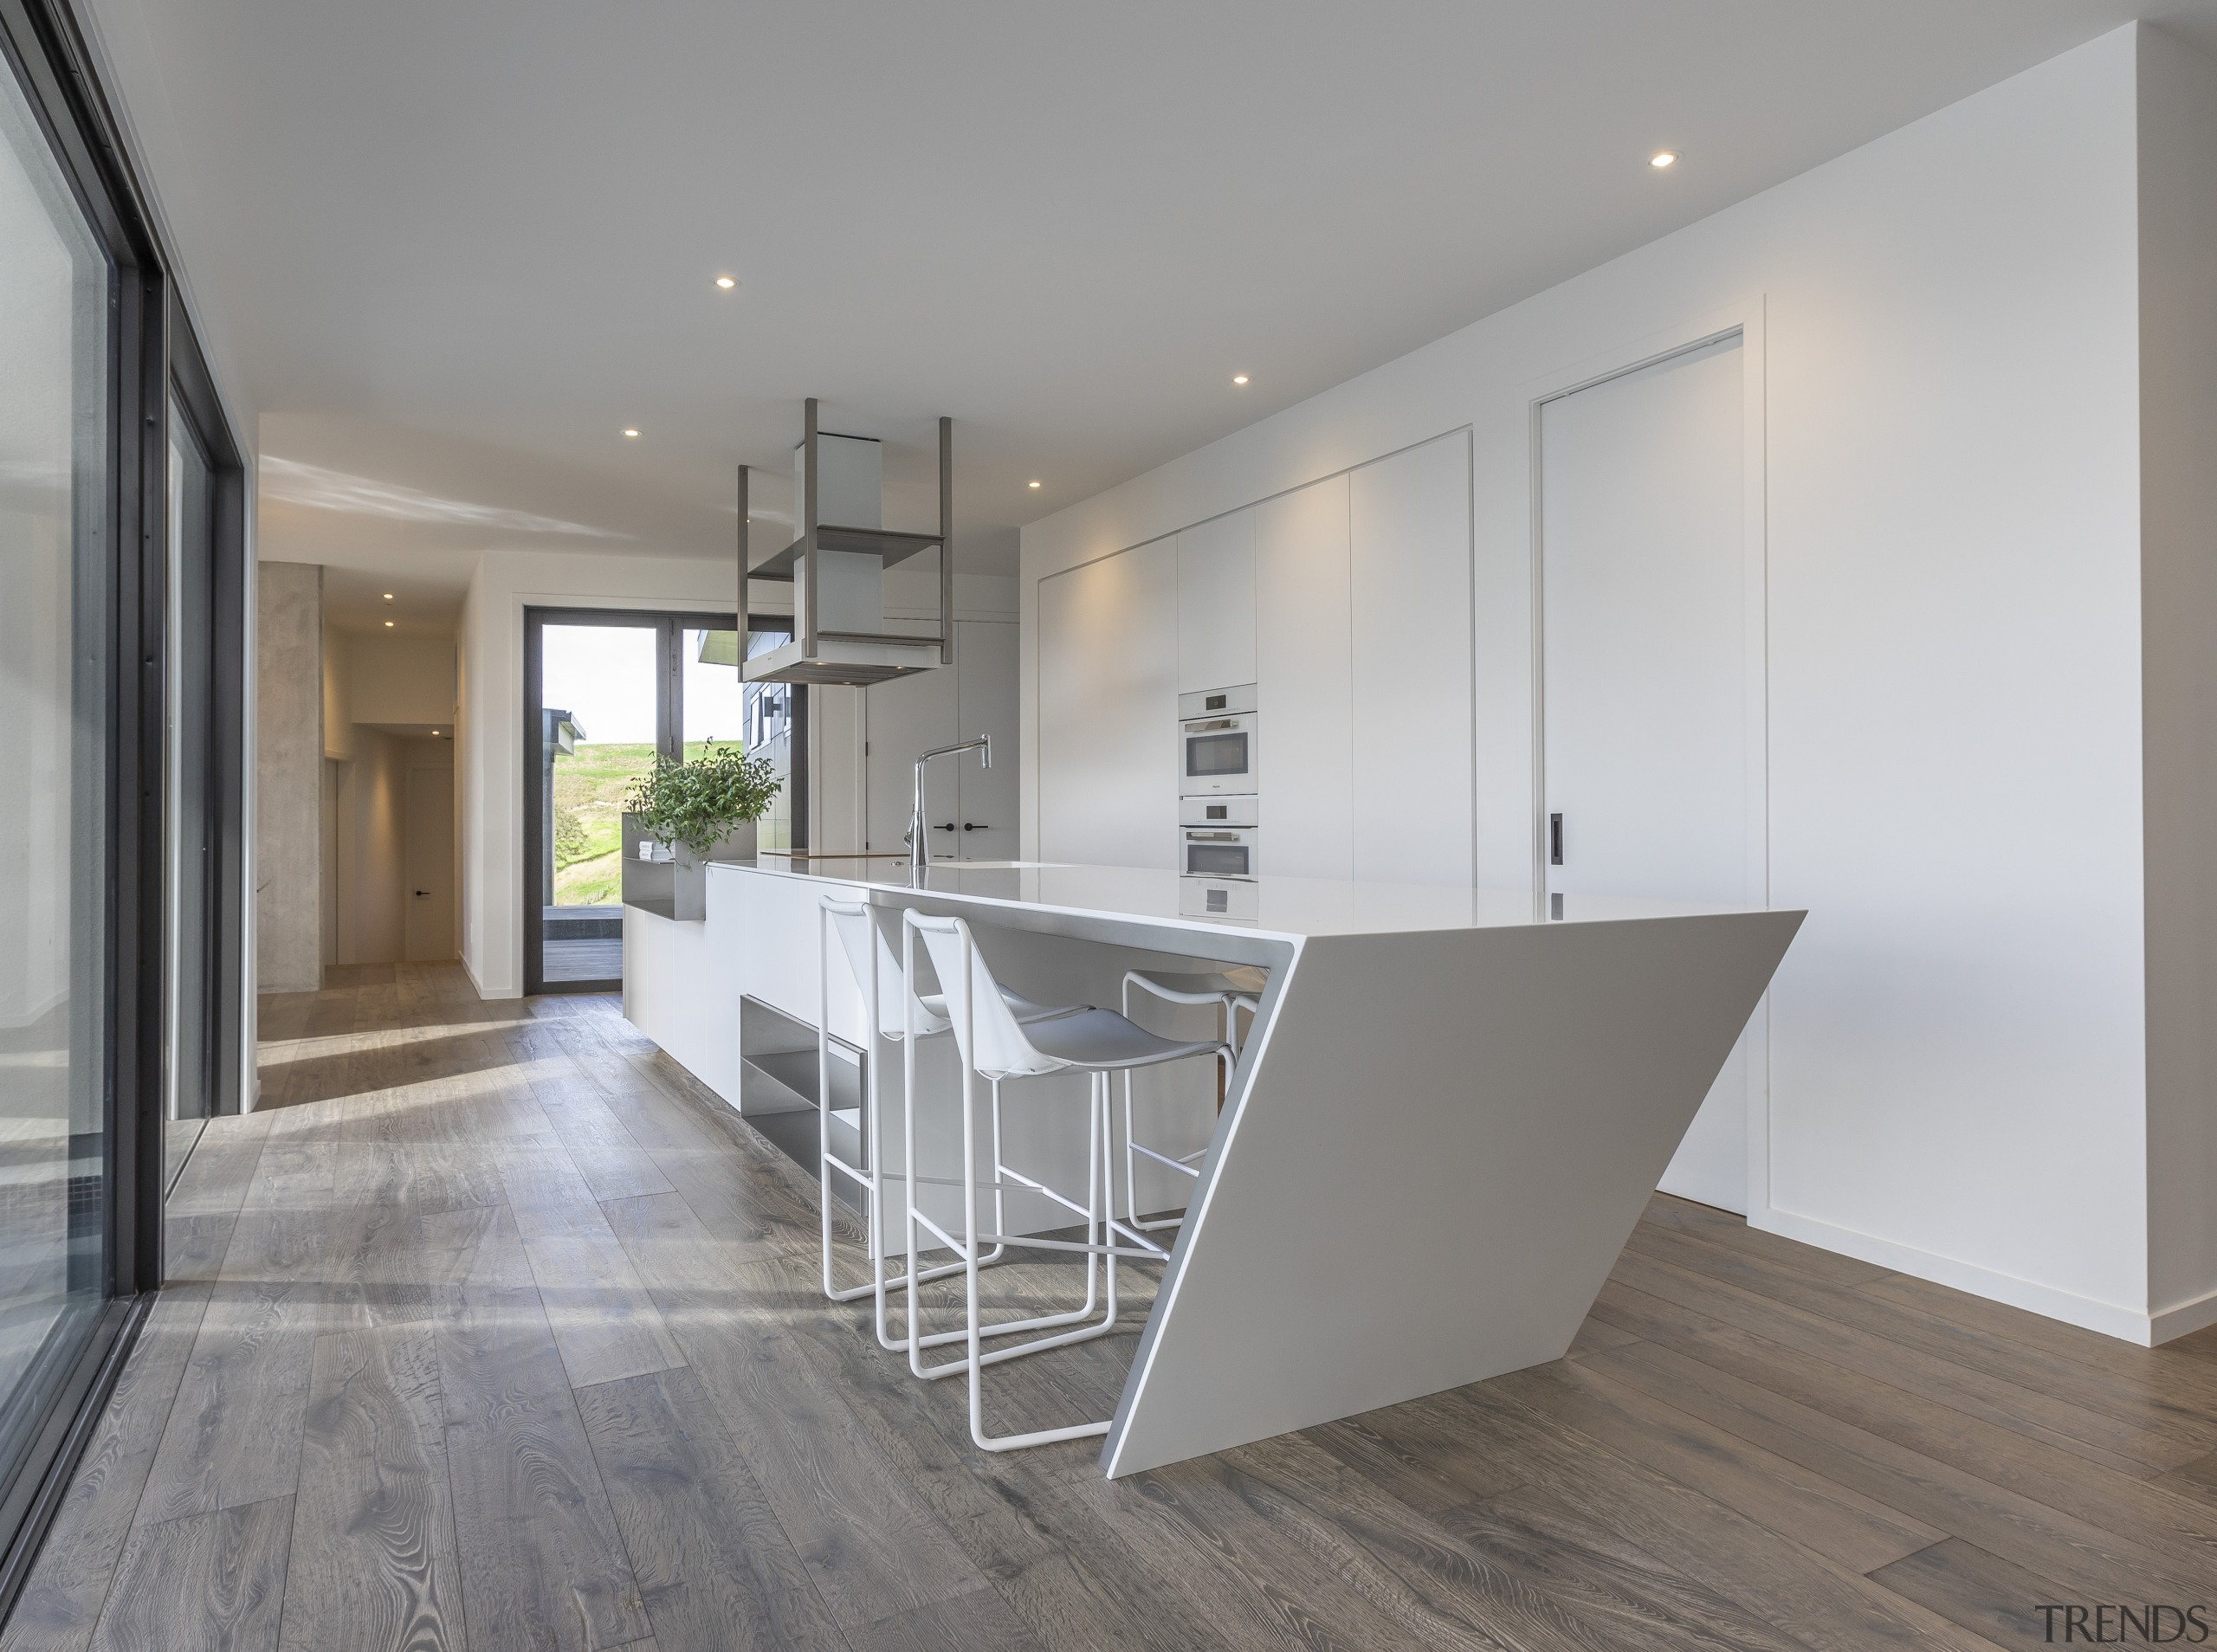 Highly Commended – Celia Visser Design – 2019 architecture, building, cabinetry, ceiling, countertop, daylighting, design, floor, flooring, furniture, hardwood, home, house, interior design, kitchen, laminate flooring, loft, material property, property, real estate, room, table, tile, wood, wood flooring, gray